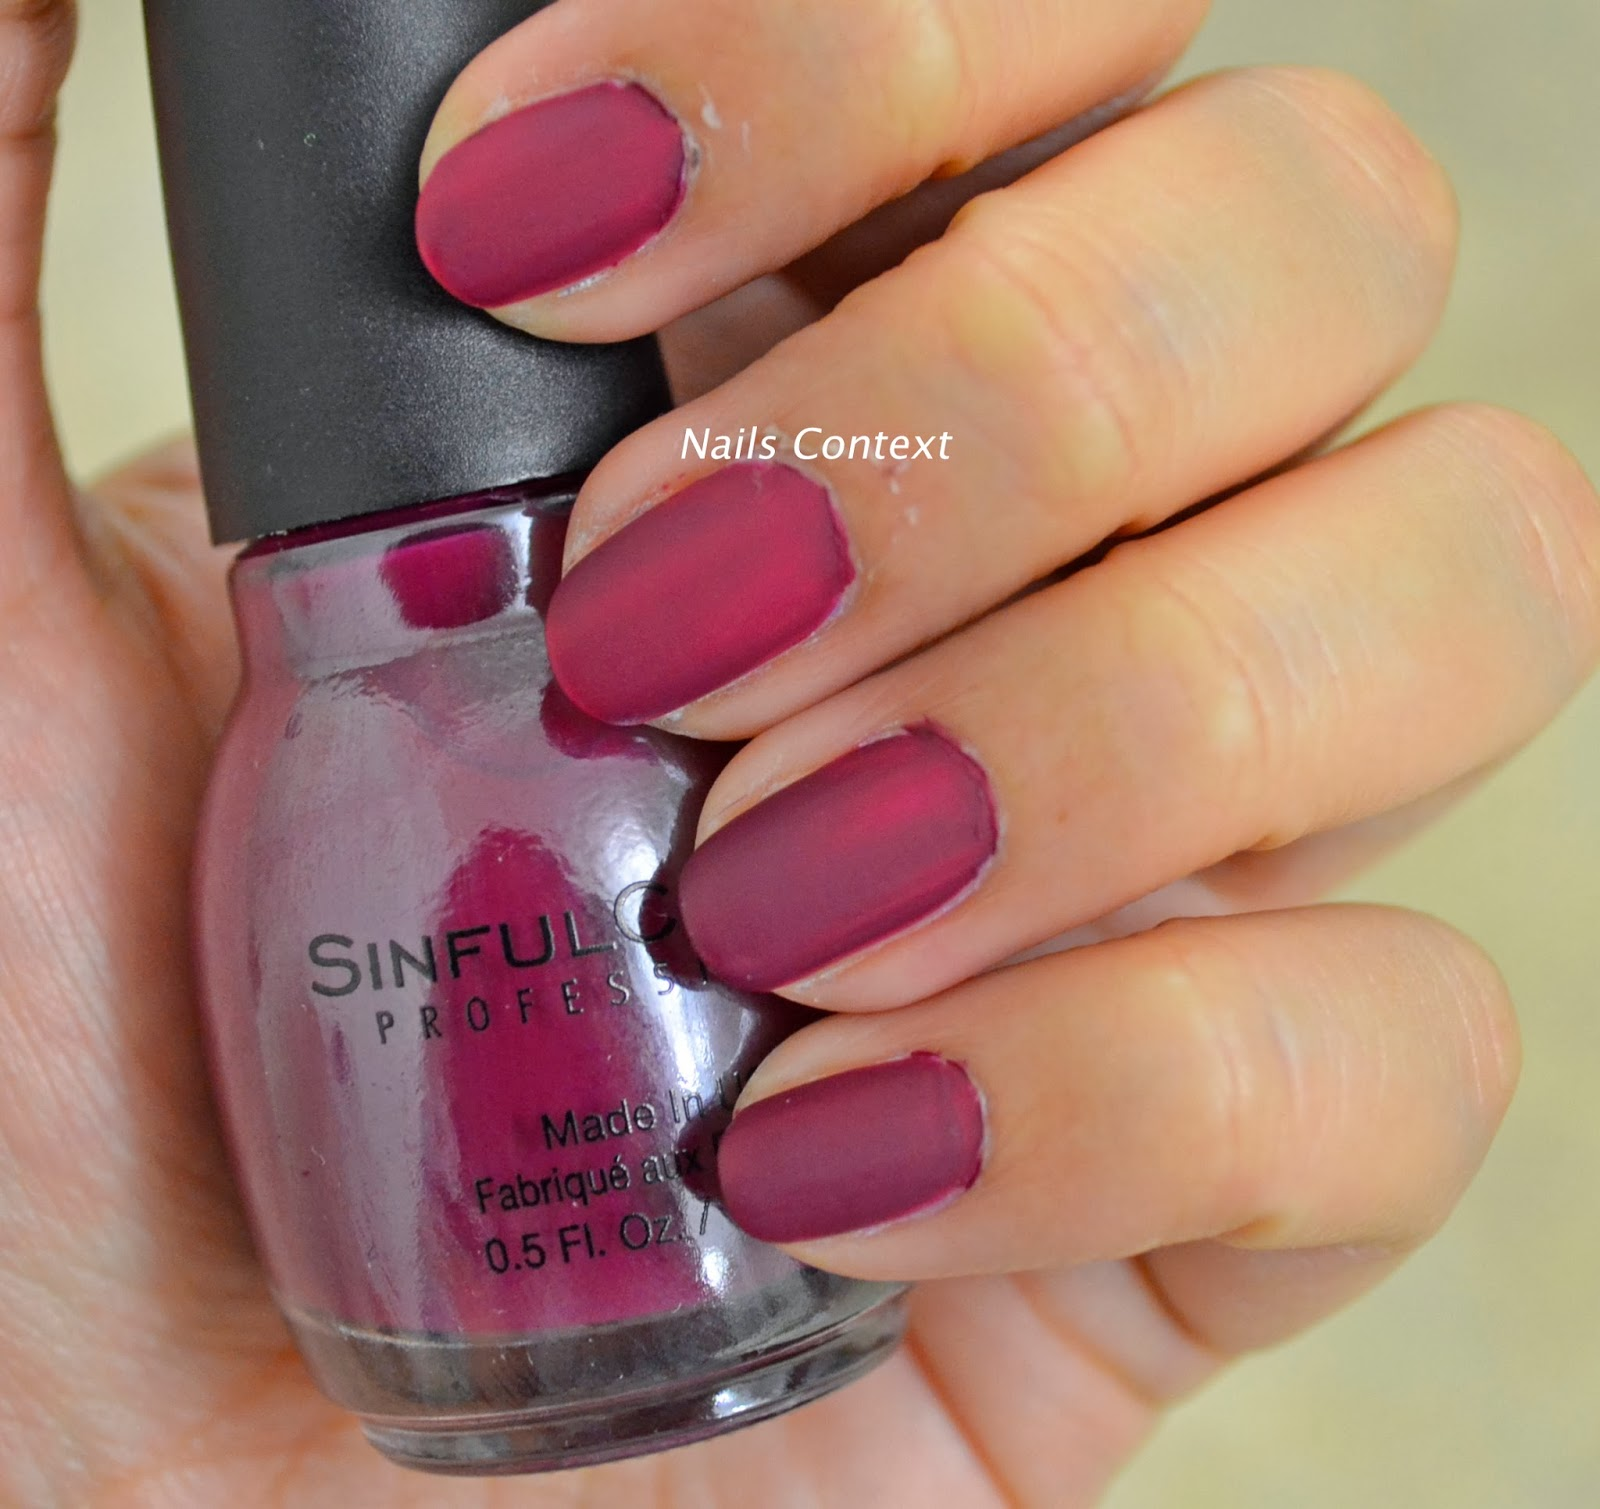 Nails Context: SinfulColors Professional Leather Luxe